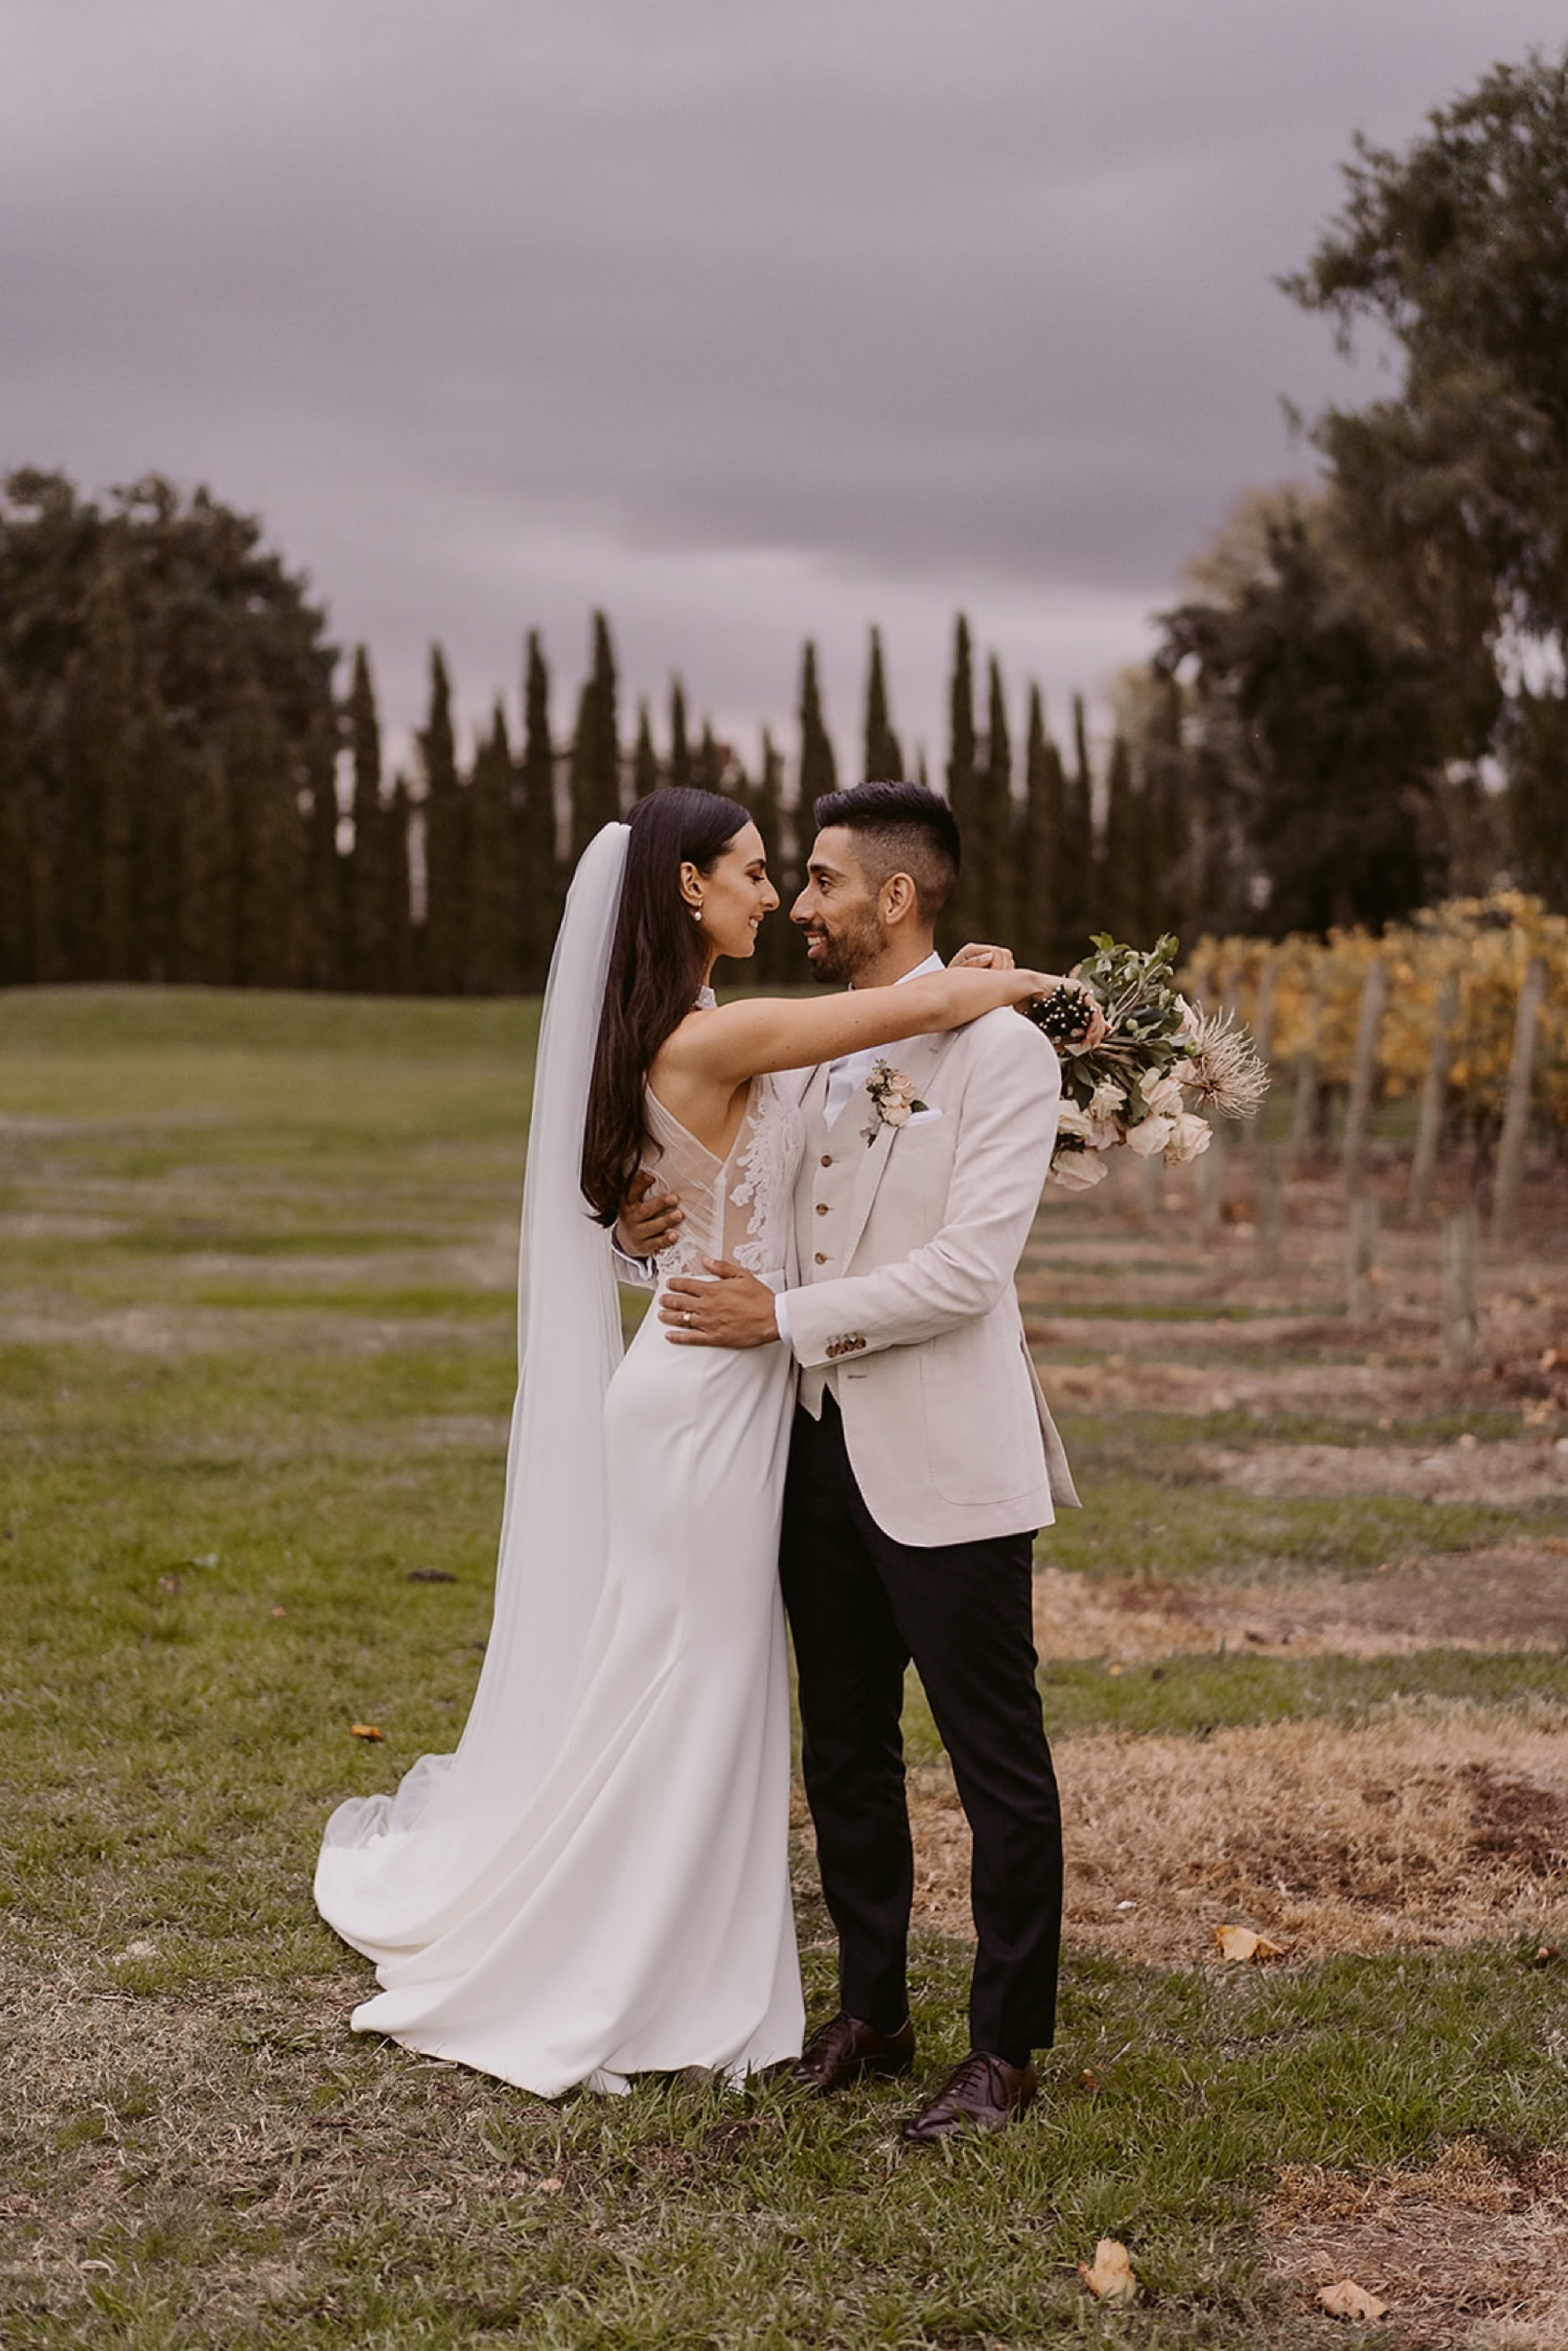 Stones of the Yarra Valley wedding photographer Ashleigh haase100.jpg